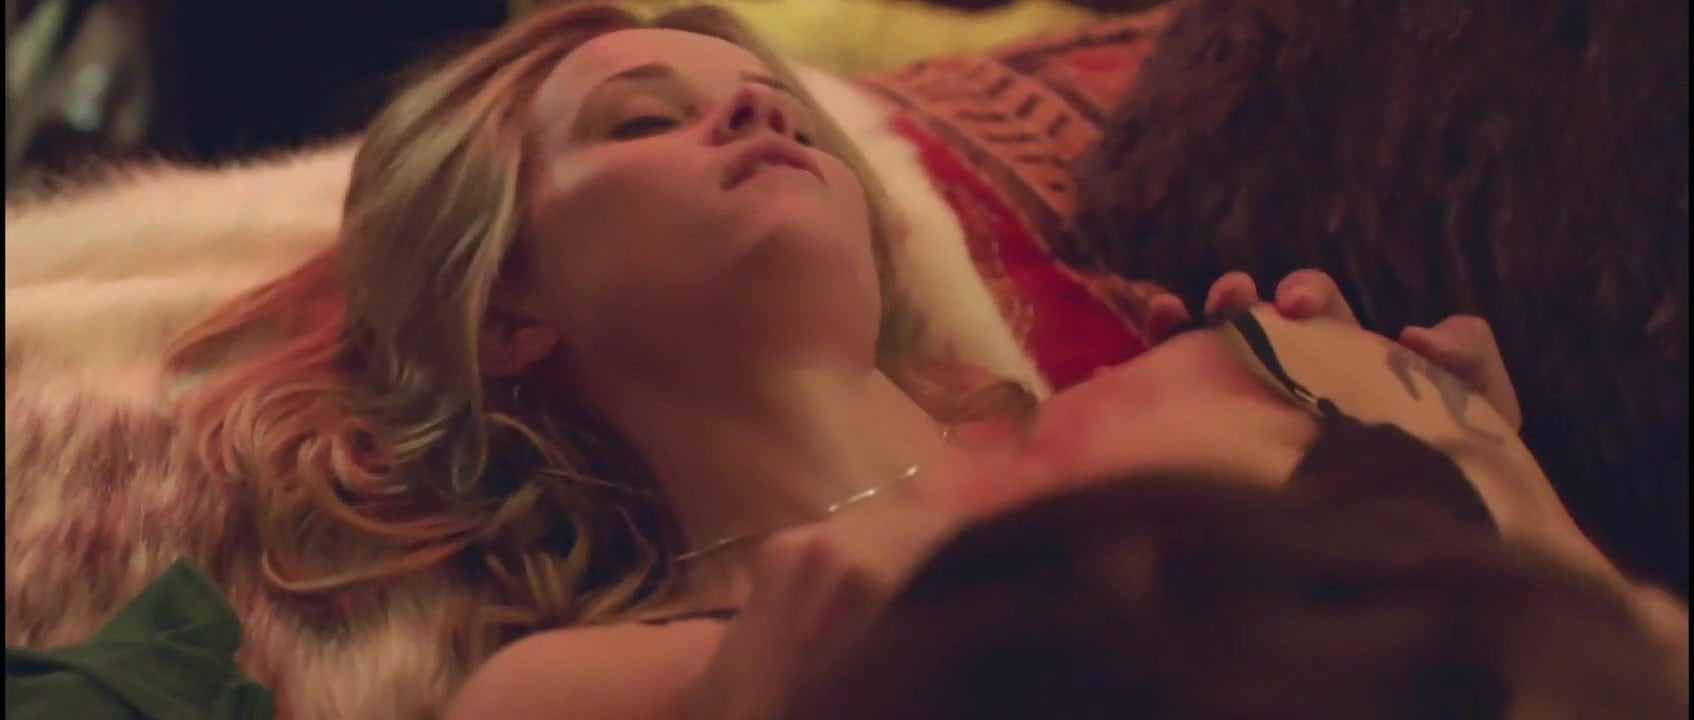 Reese Witherspoon Sex Movies photo 29